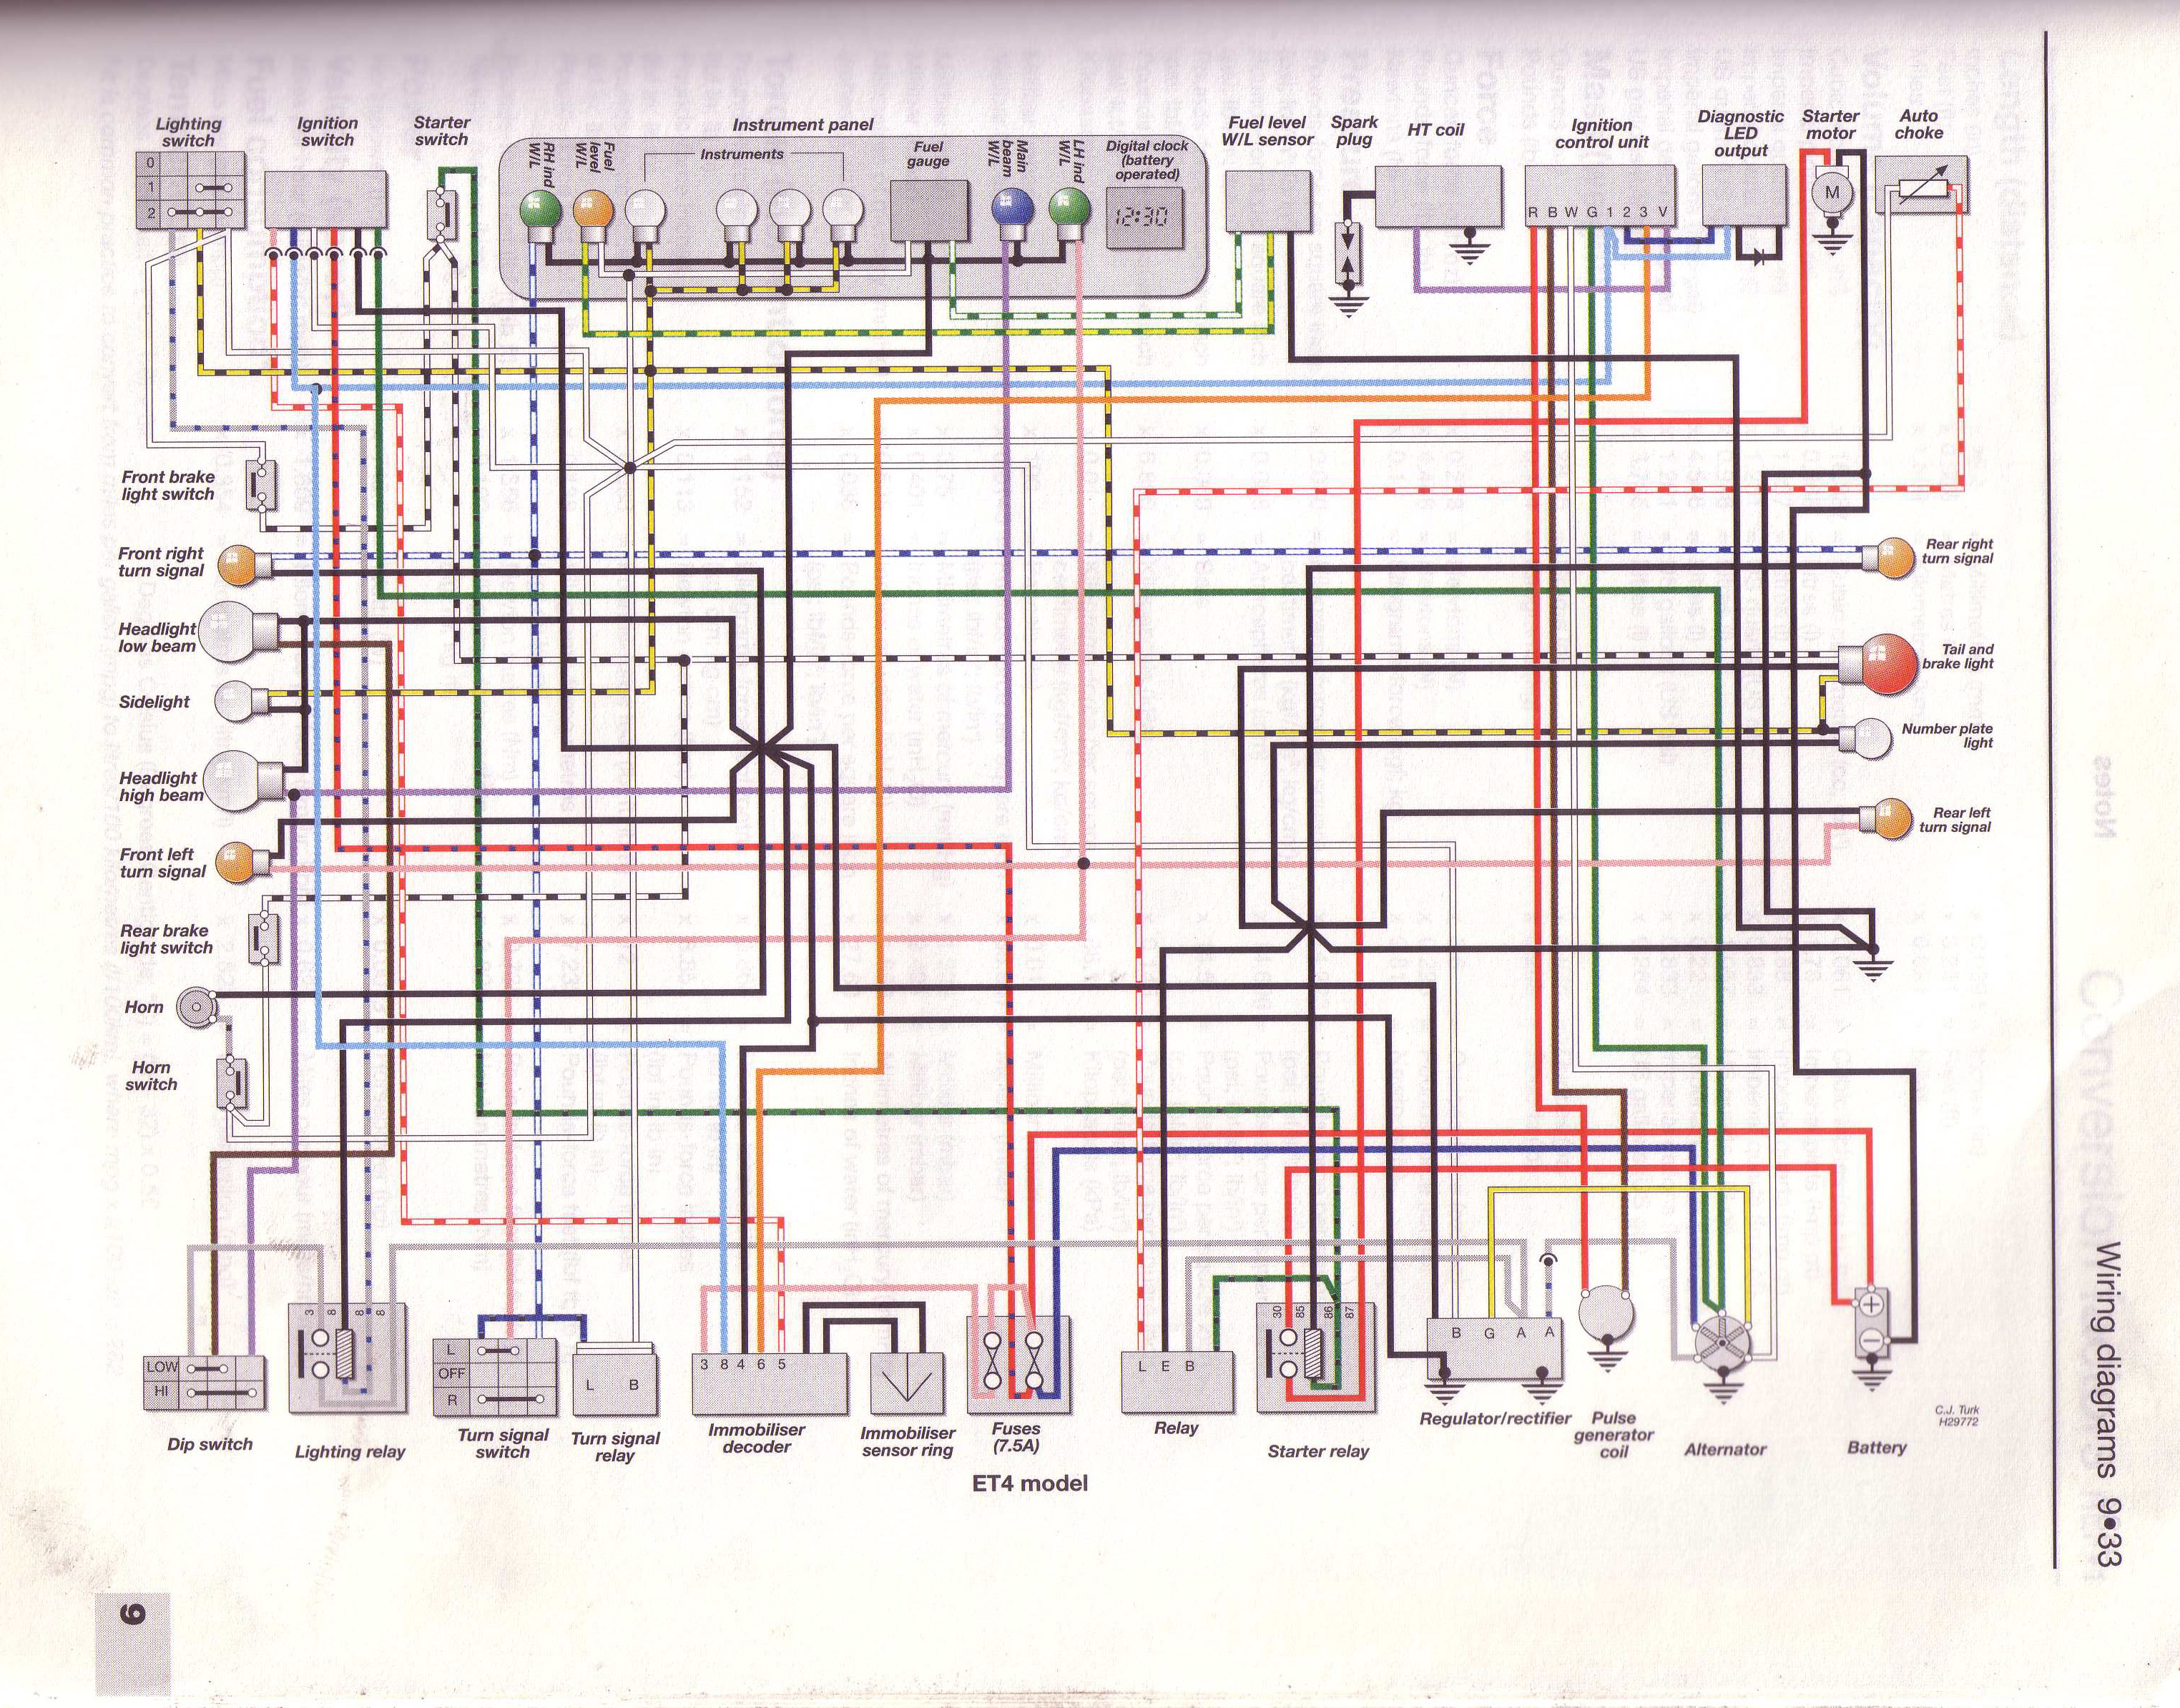 Wiring Diagram Vespa Px 150 Free For You Corsa 2001 Schematic Name Rh 20 1 Systembeimroulette De Red